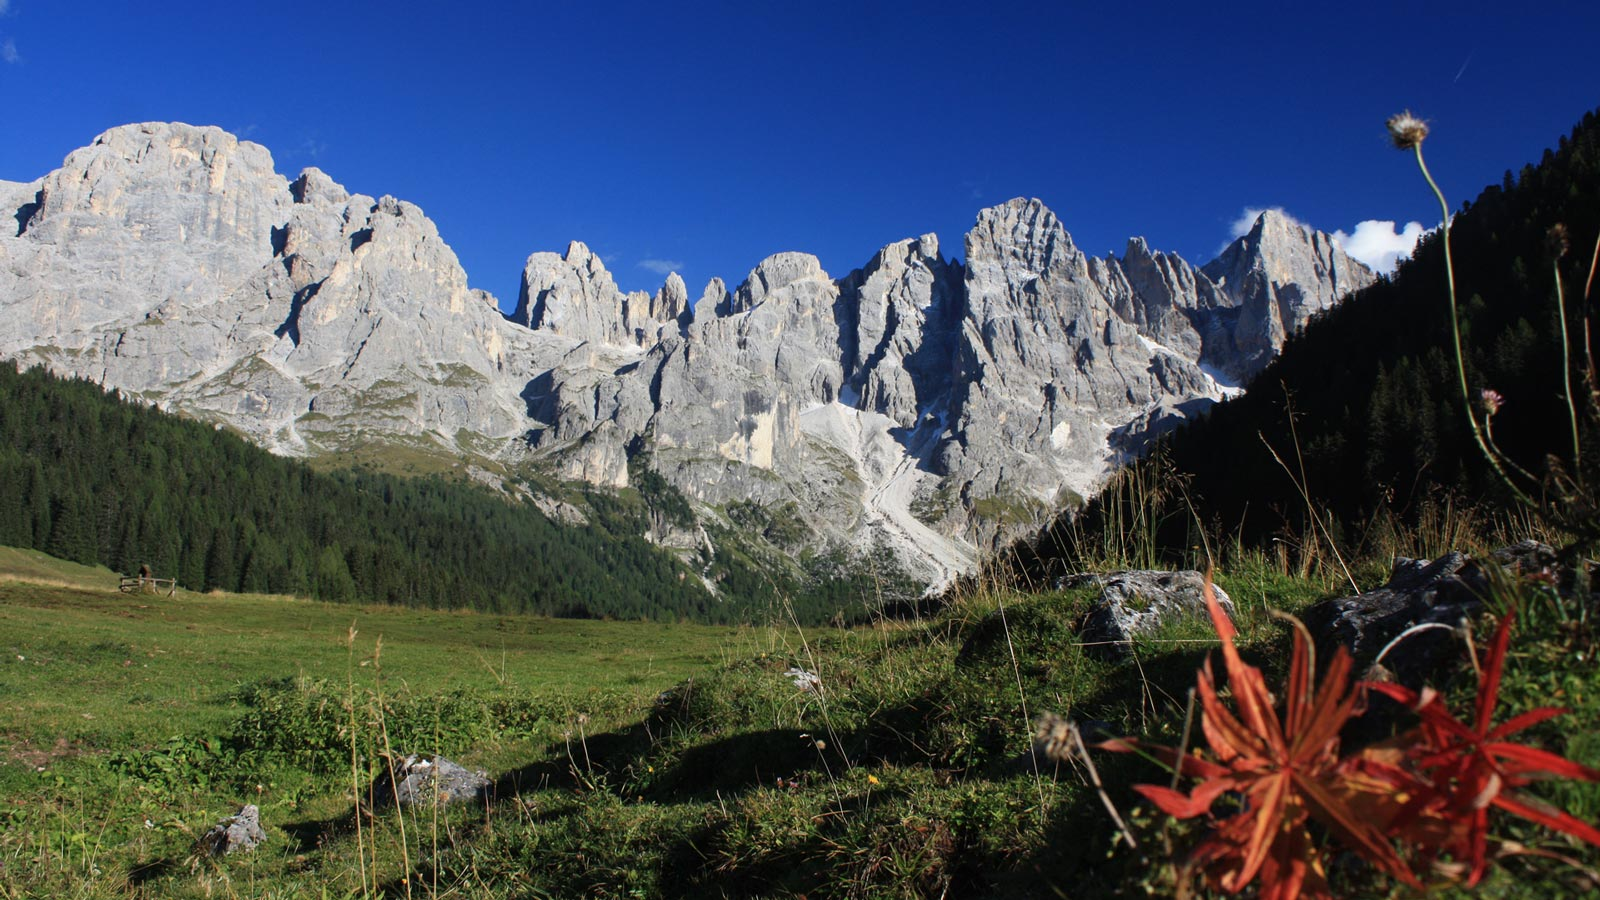 view of the Dolomites in summer with orange flower